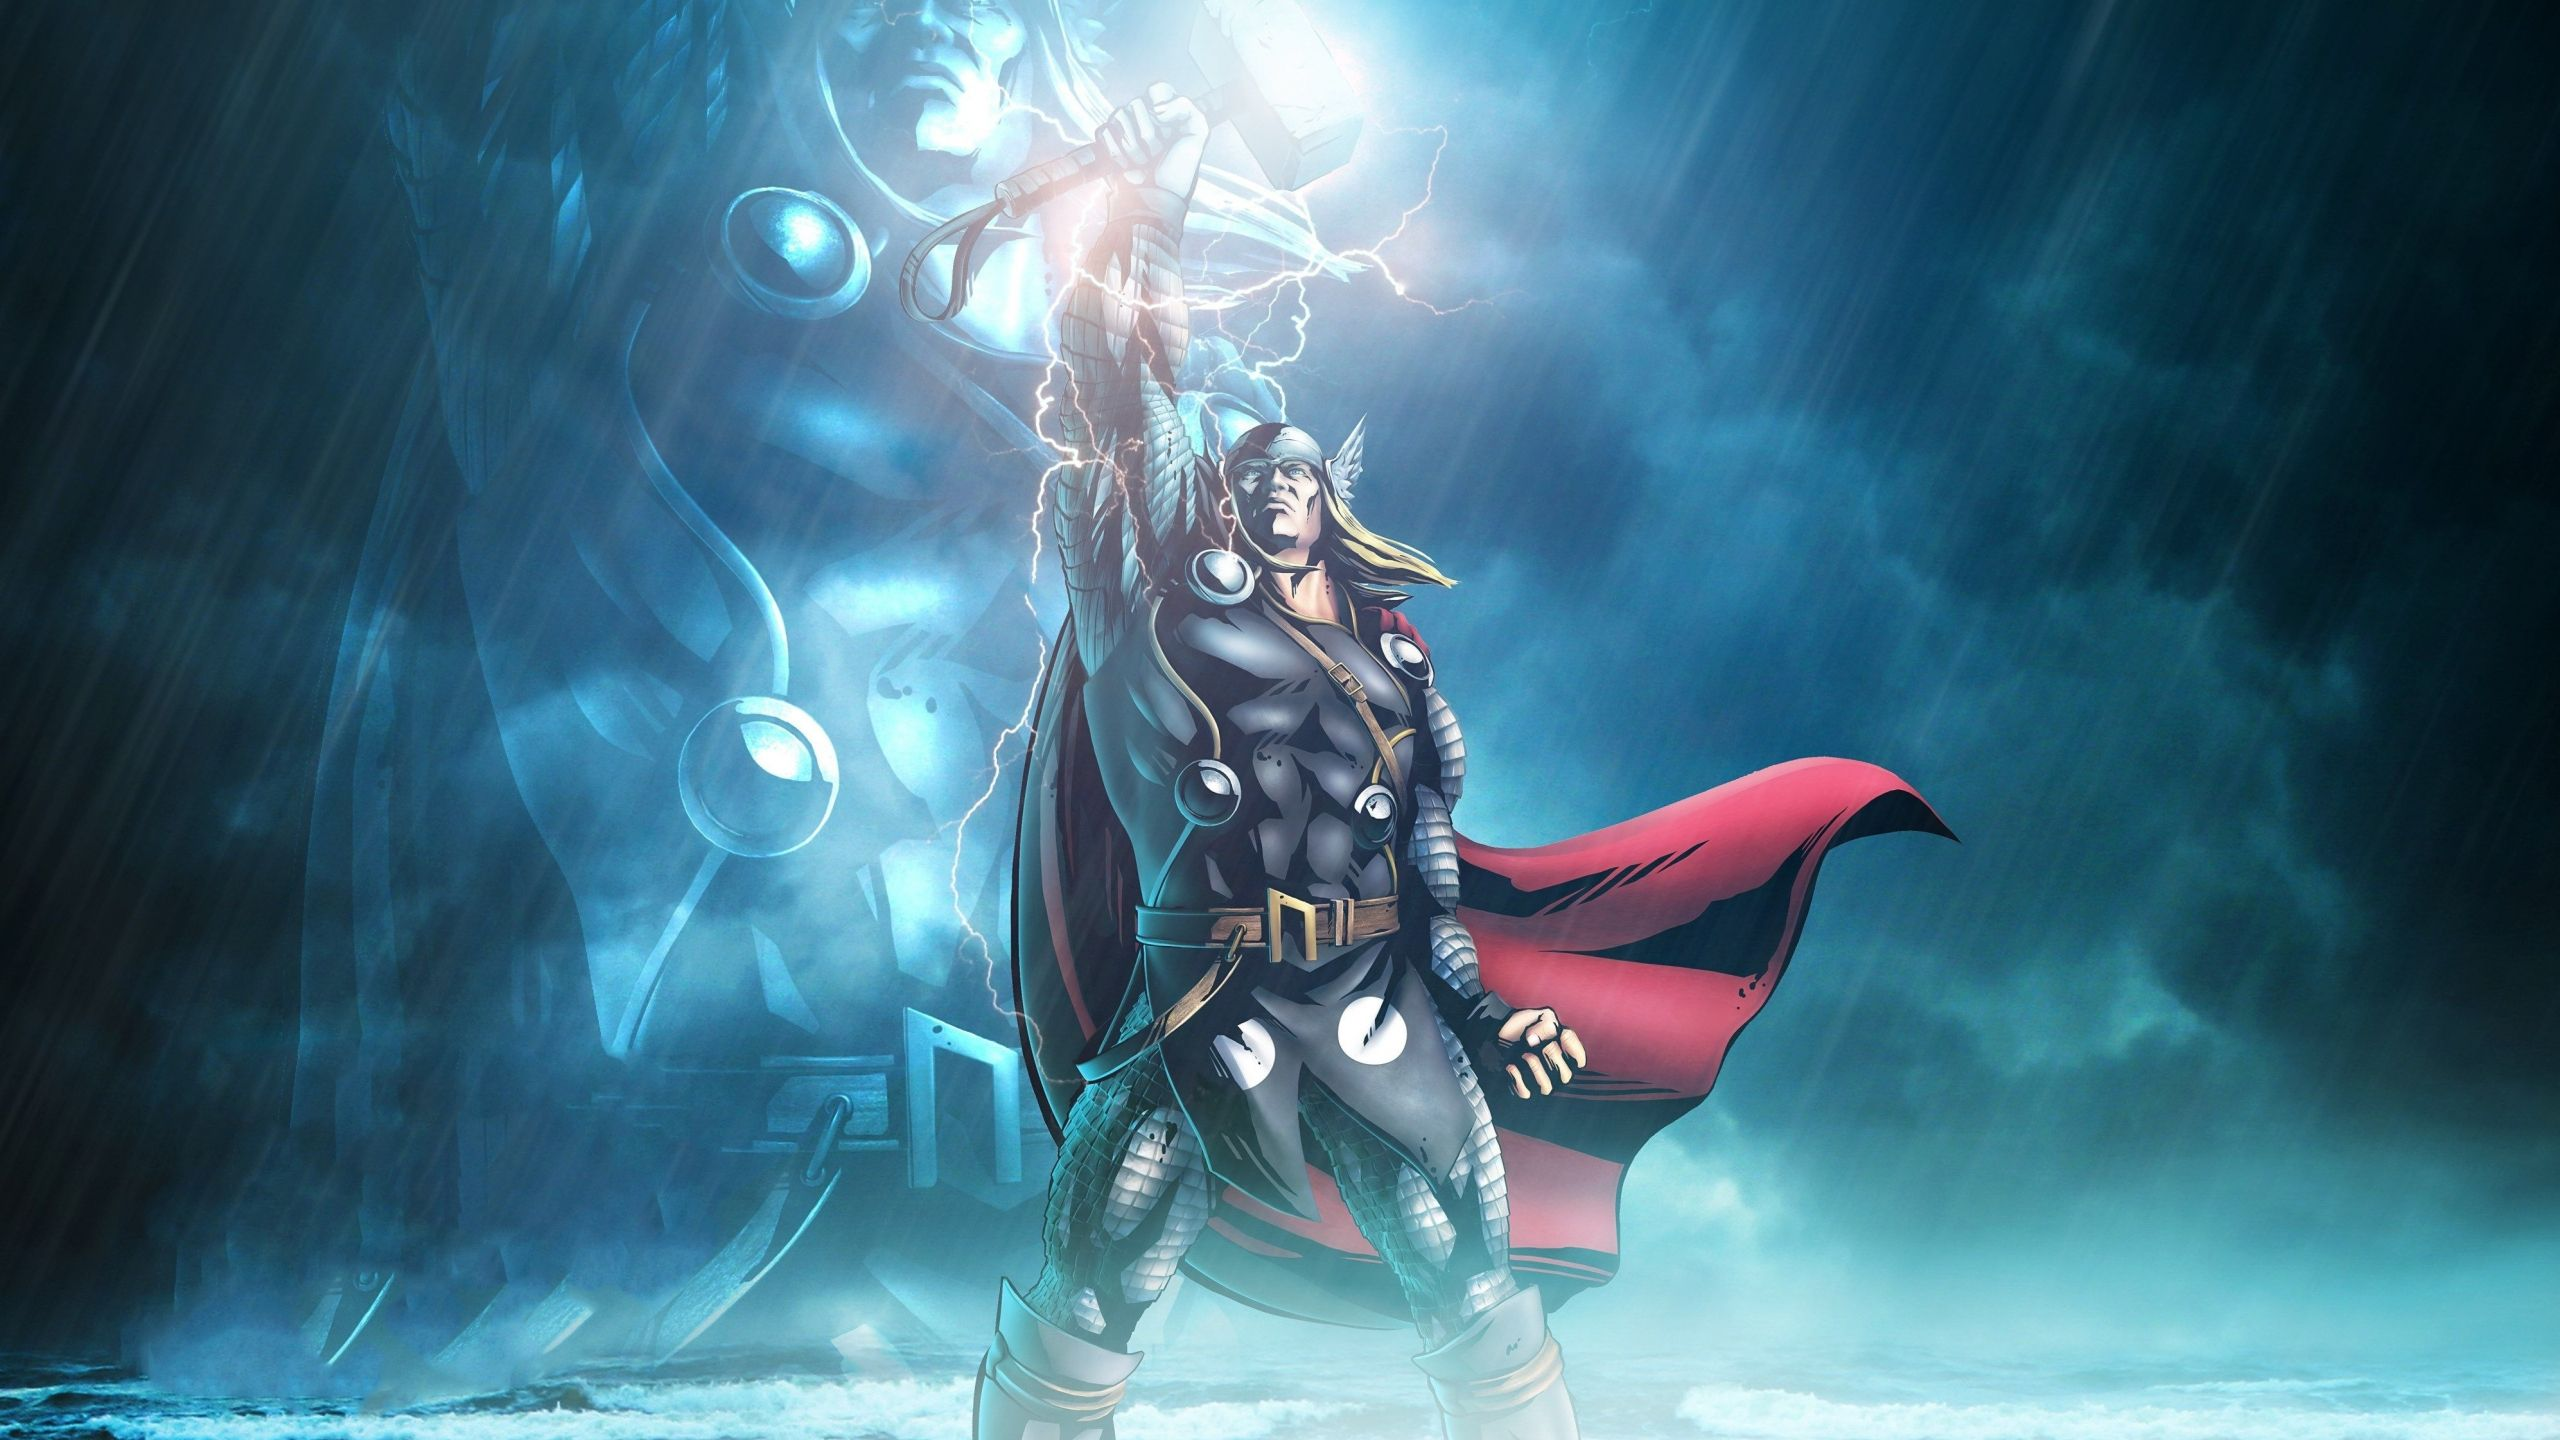 Download 2560x1440 wallpapers marvel, lightning god, thor, art, dual wide, widescreen 16:9, widescreen, 2560x1440 hd image, background, 16858